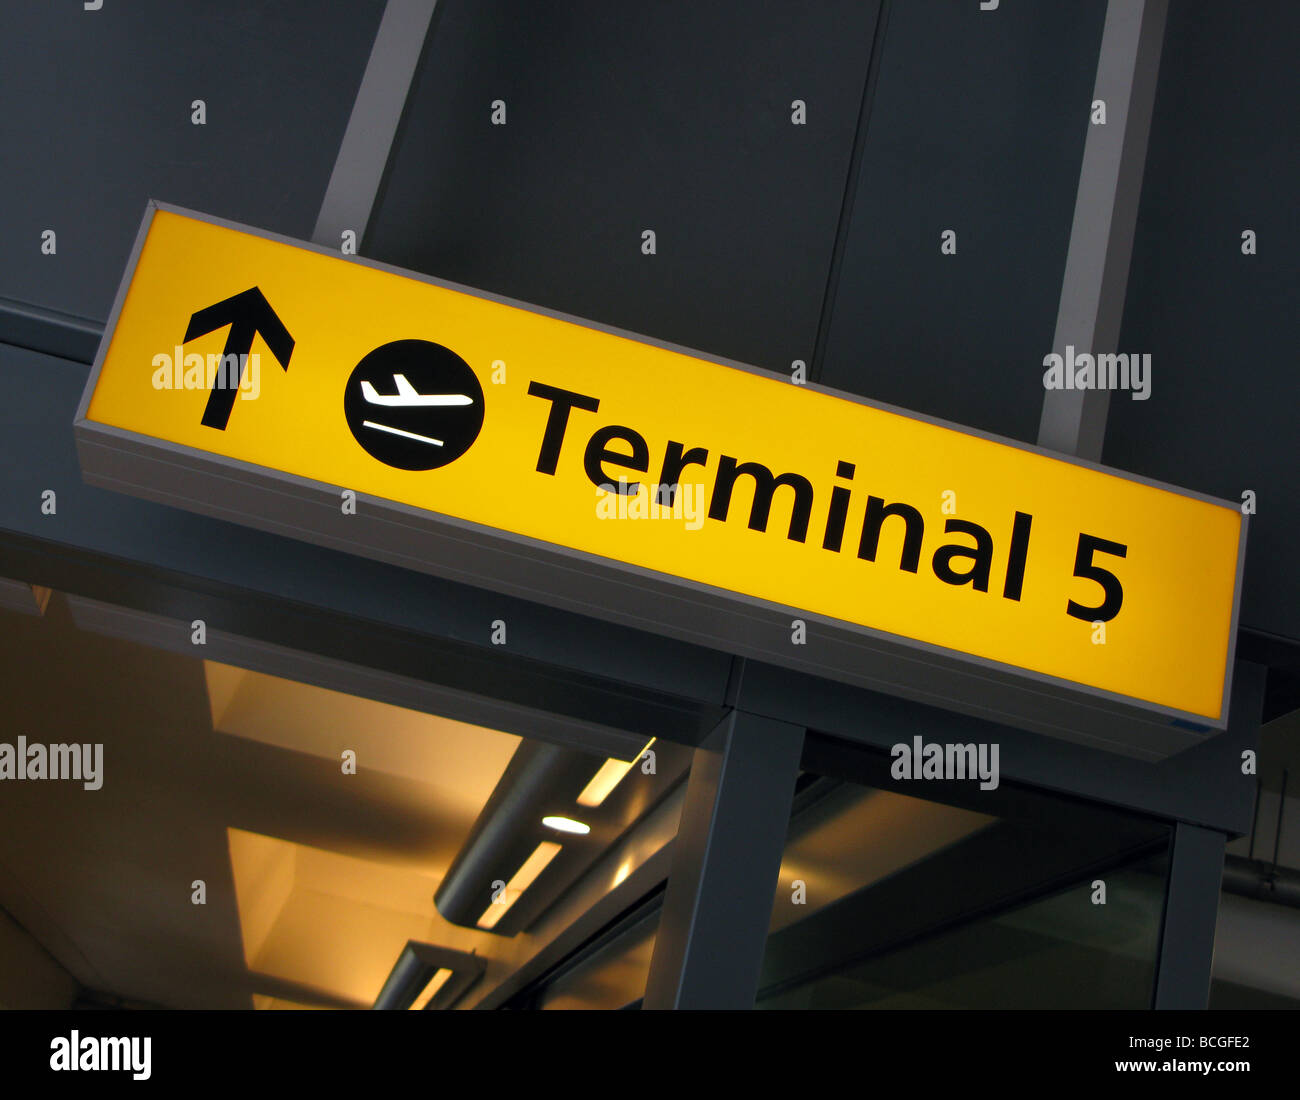 Heathrow terminal 5 sign - Stock Image